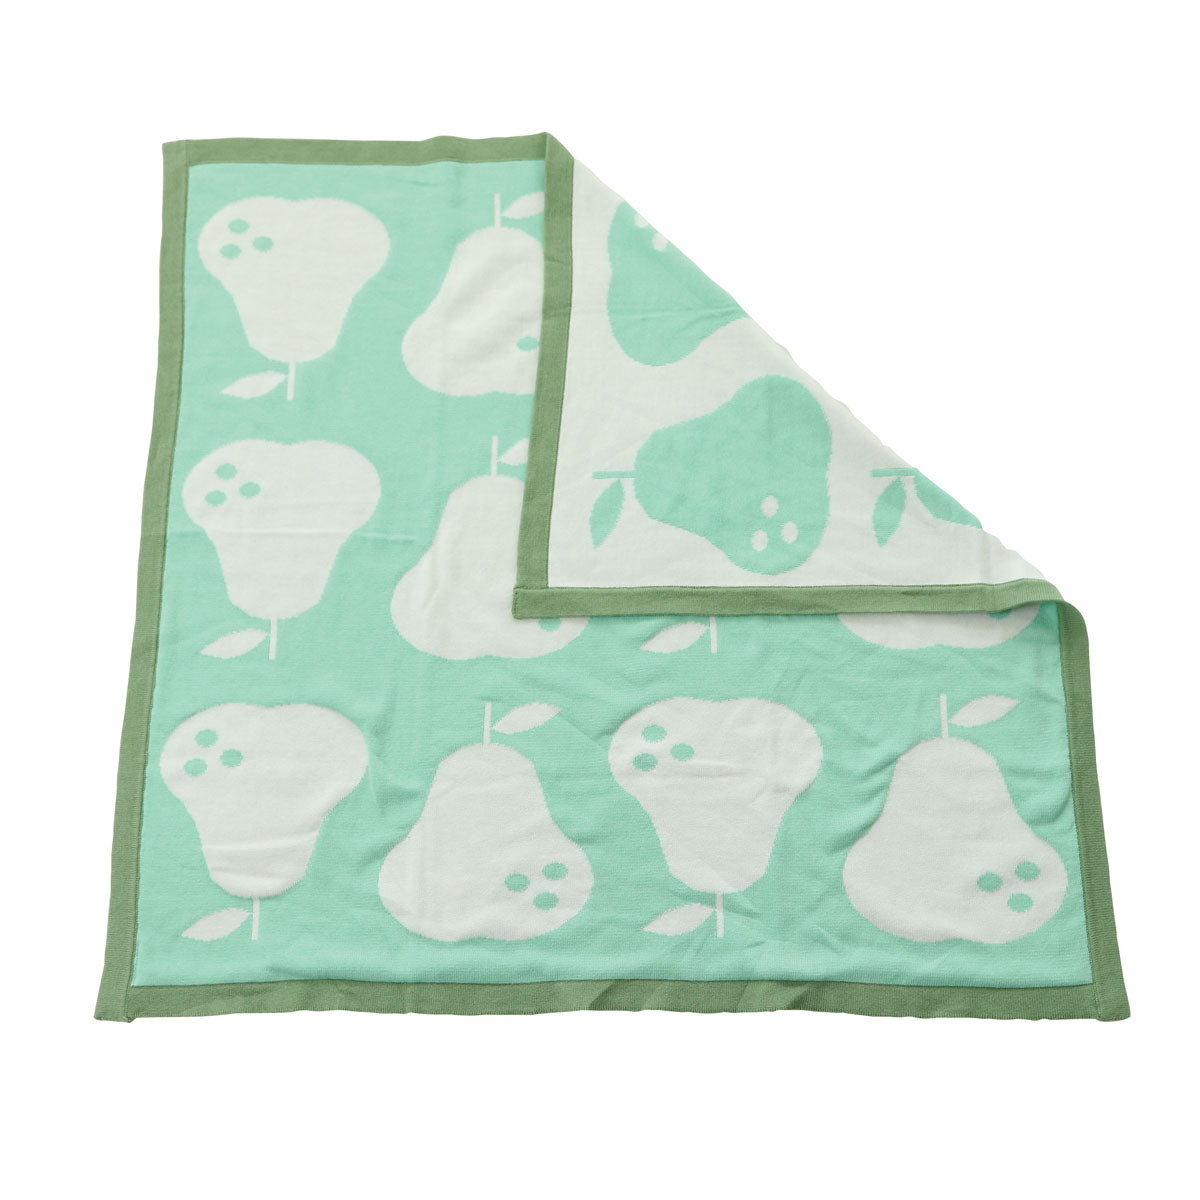 Sweater Reversible Blanket (Seafoam Pear)